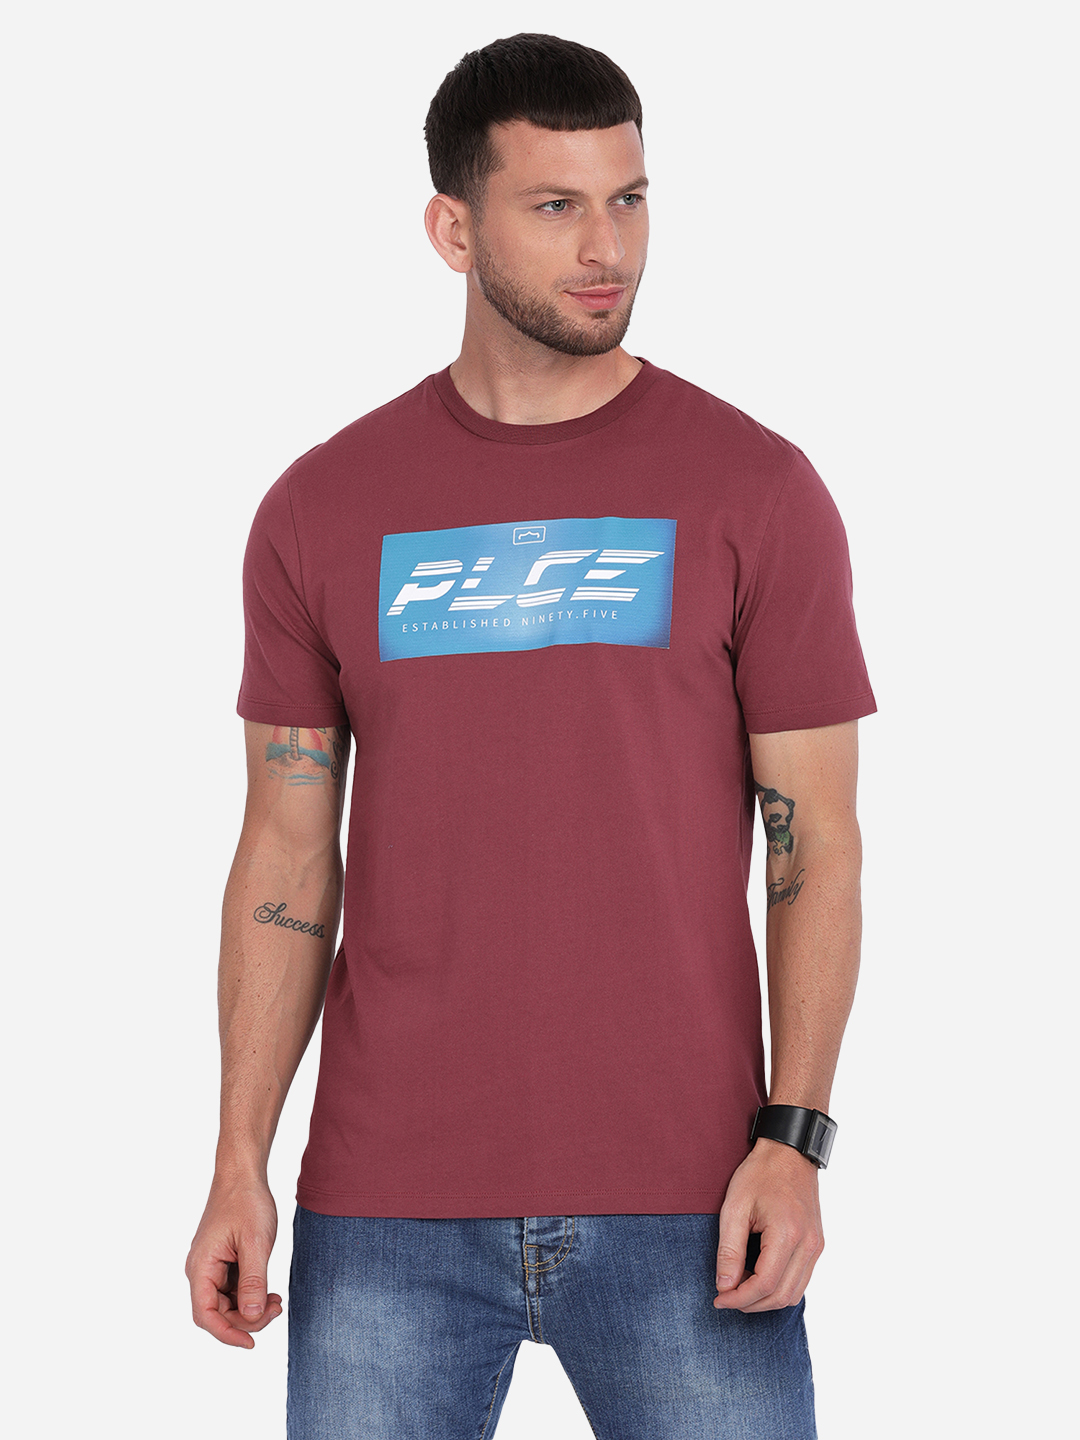 883 Police   883 Police Fuse T-shirt